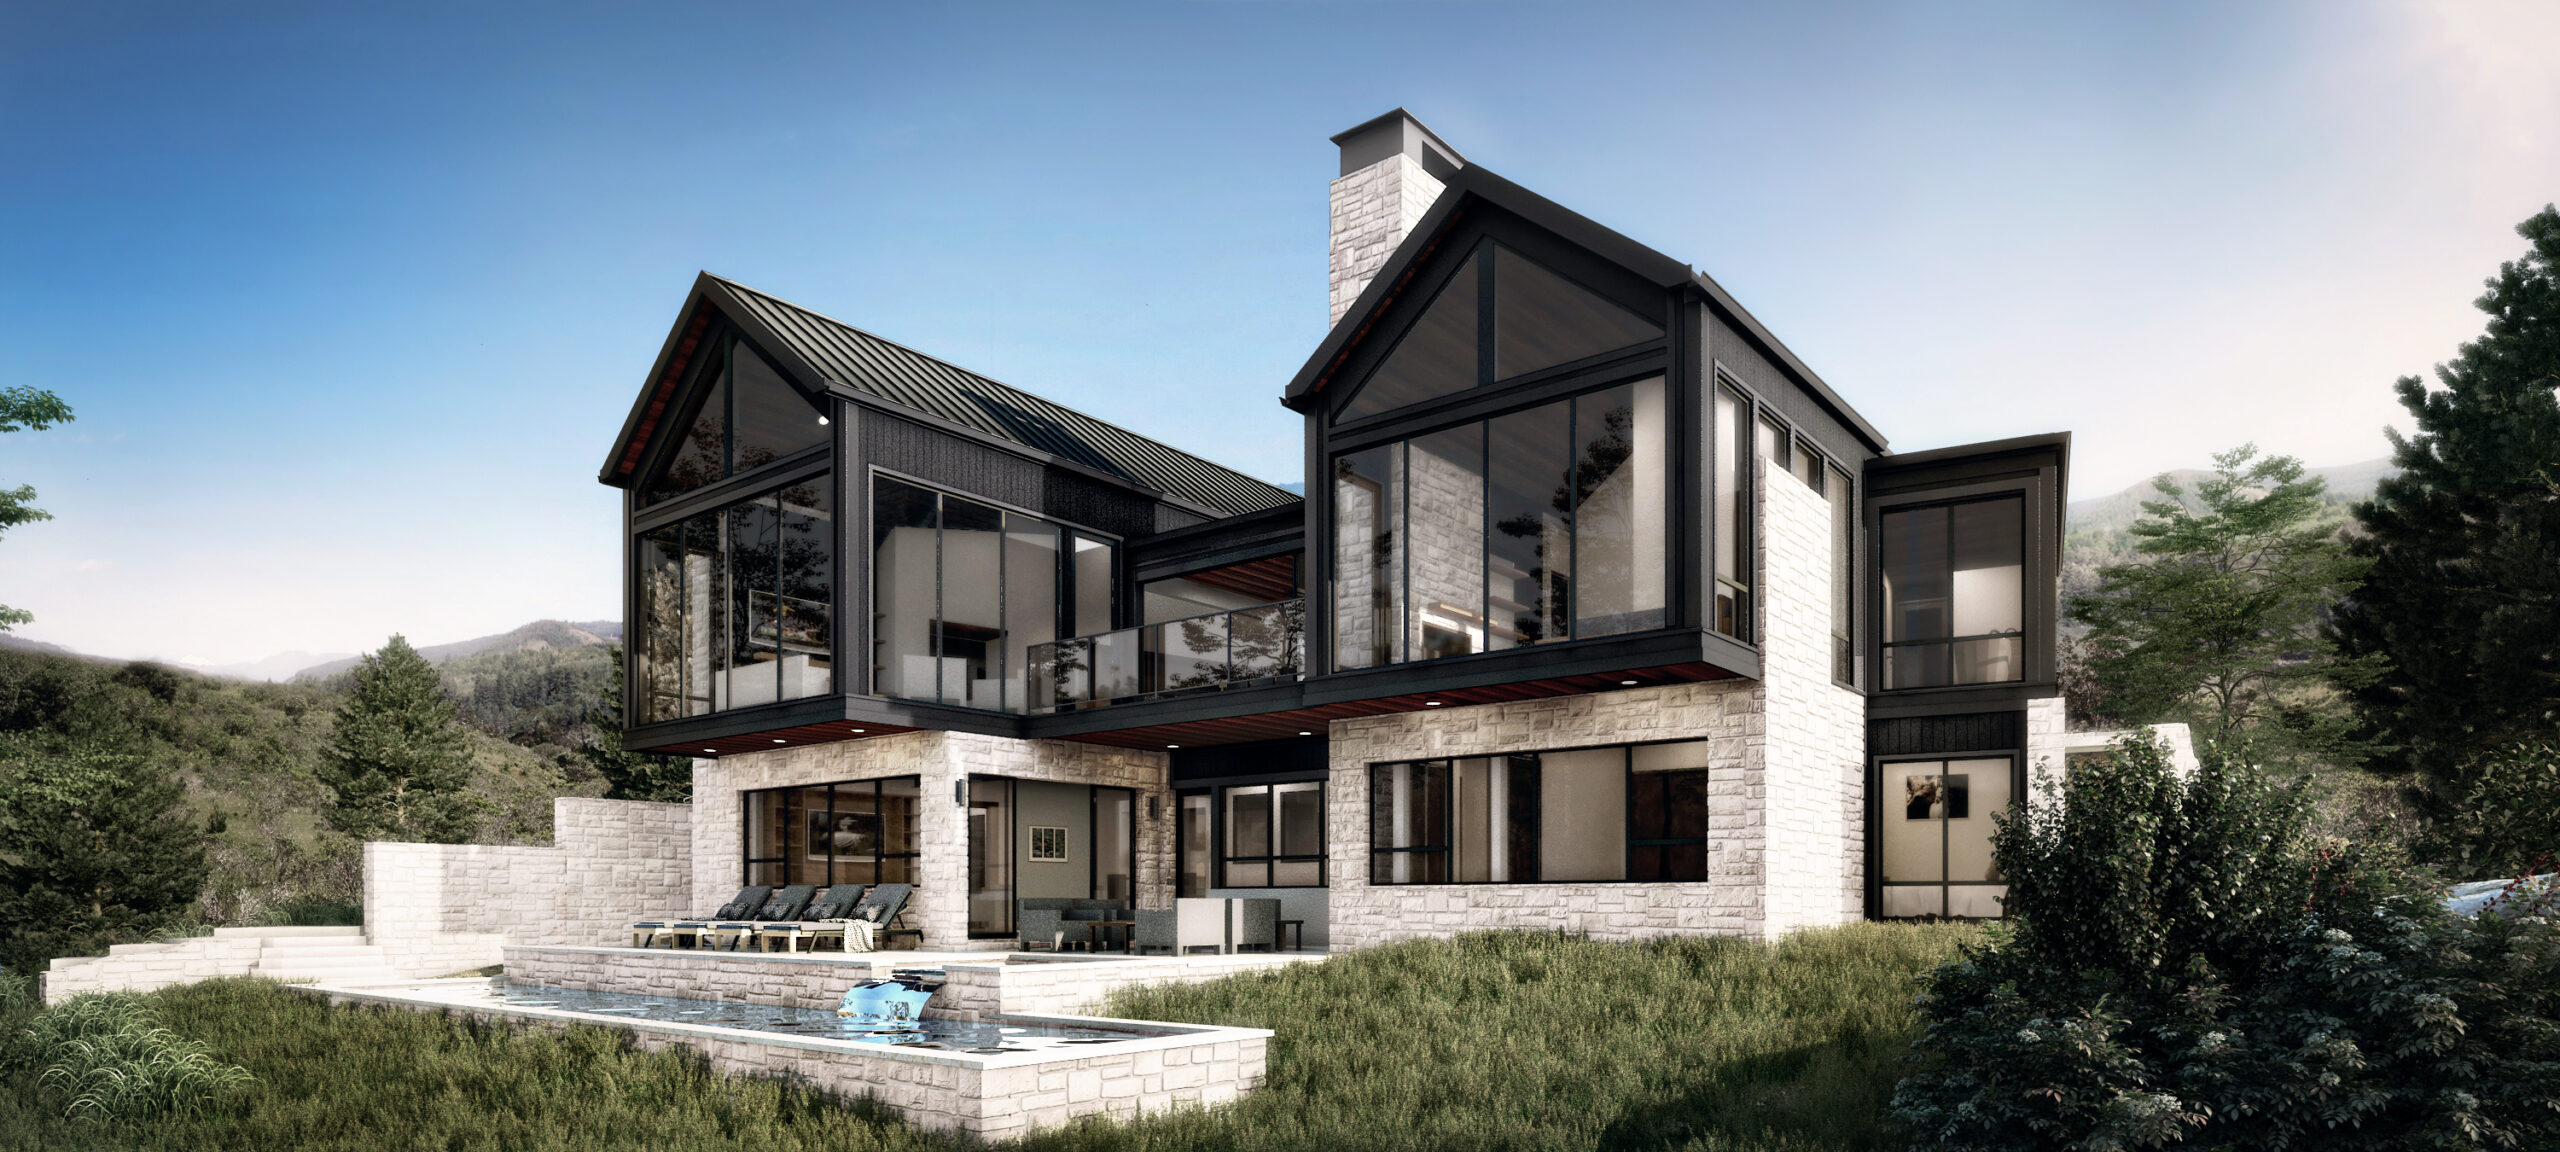 Exterior rendering of the home